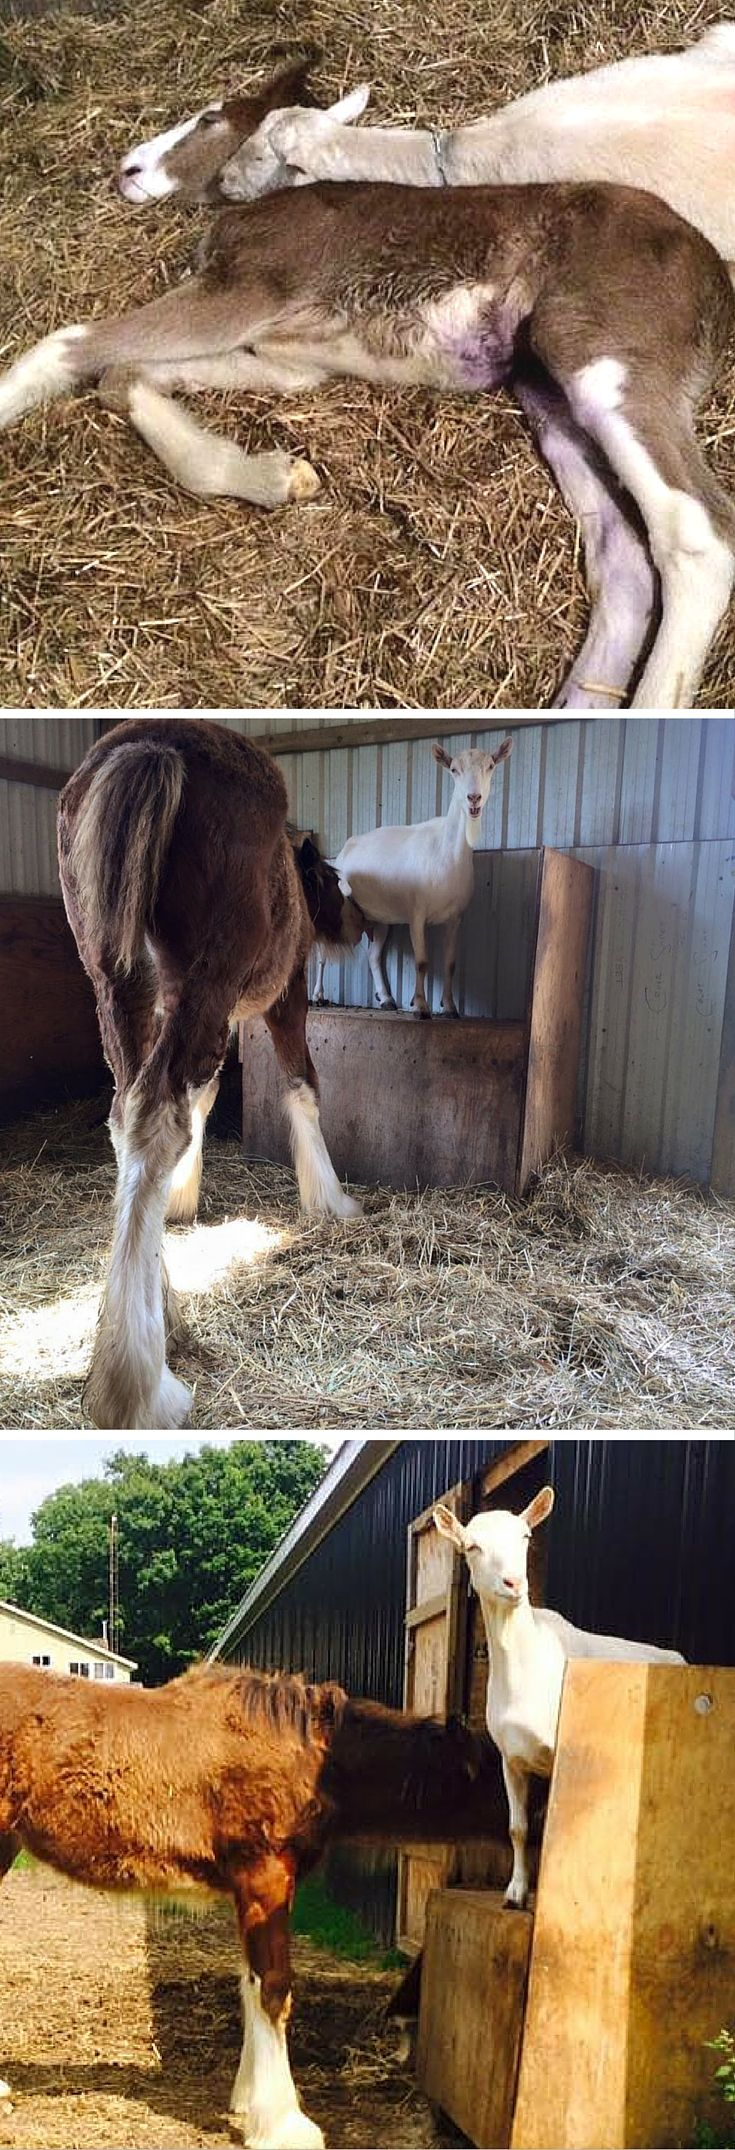 When this foal's mom died just days after she was born